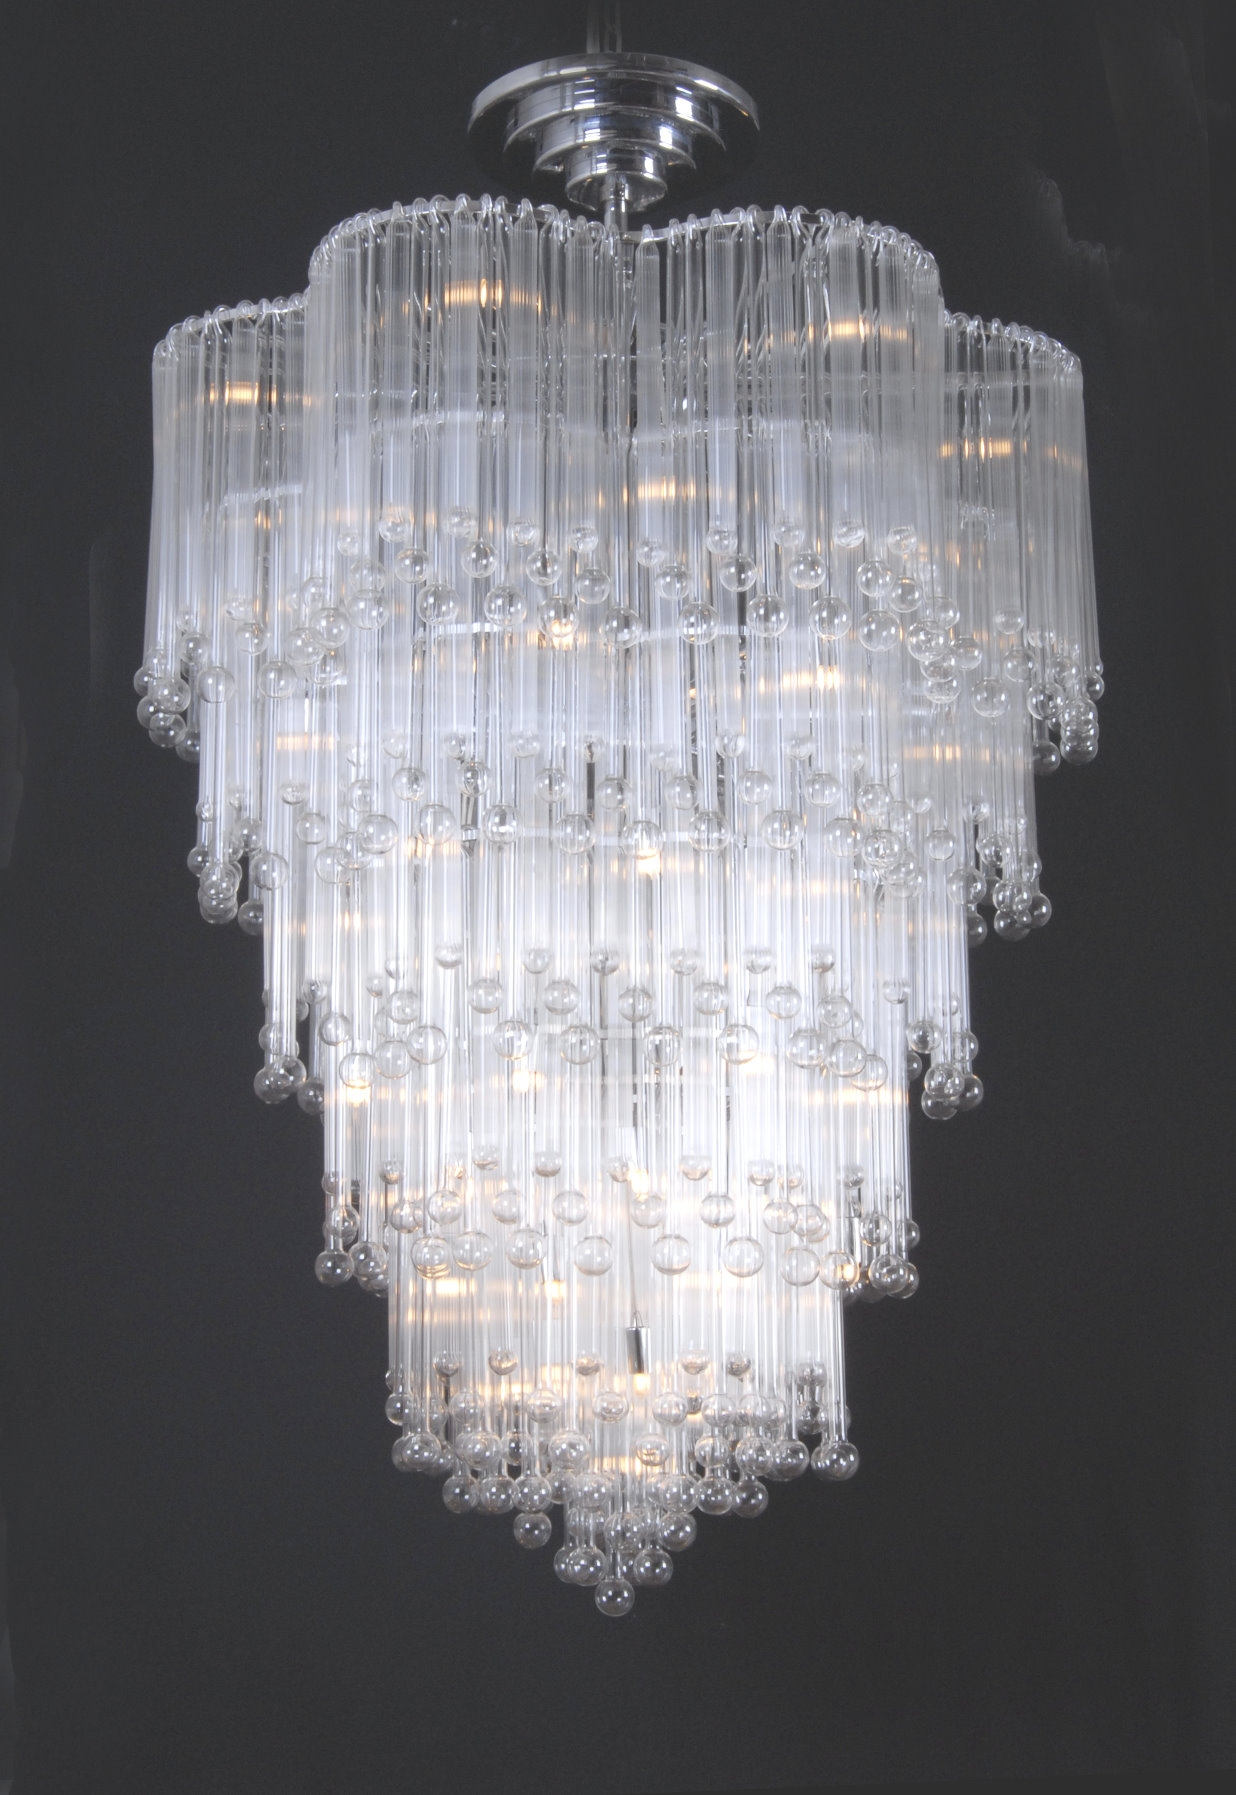 Large Chandeliers Home Design Ideas Intended For Large Chandeliers (Image 12 of 15)